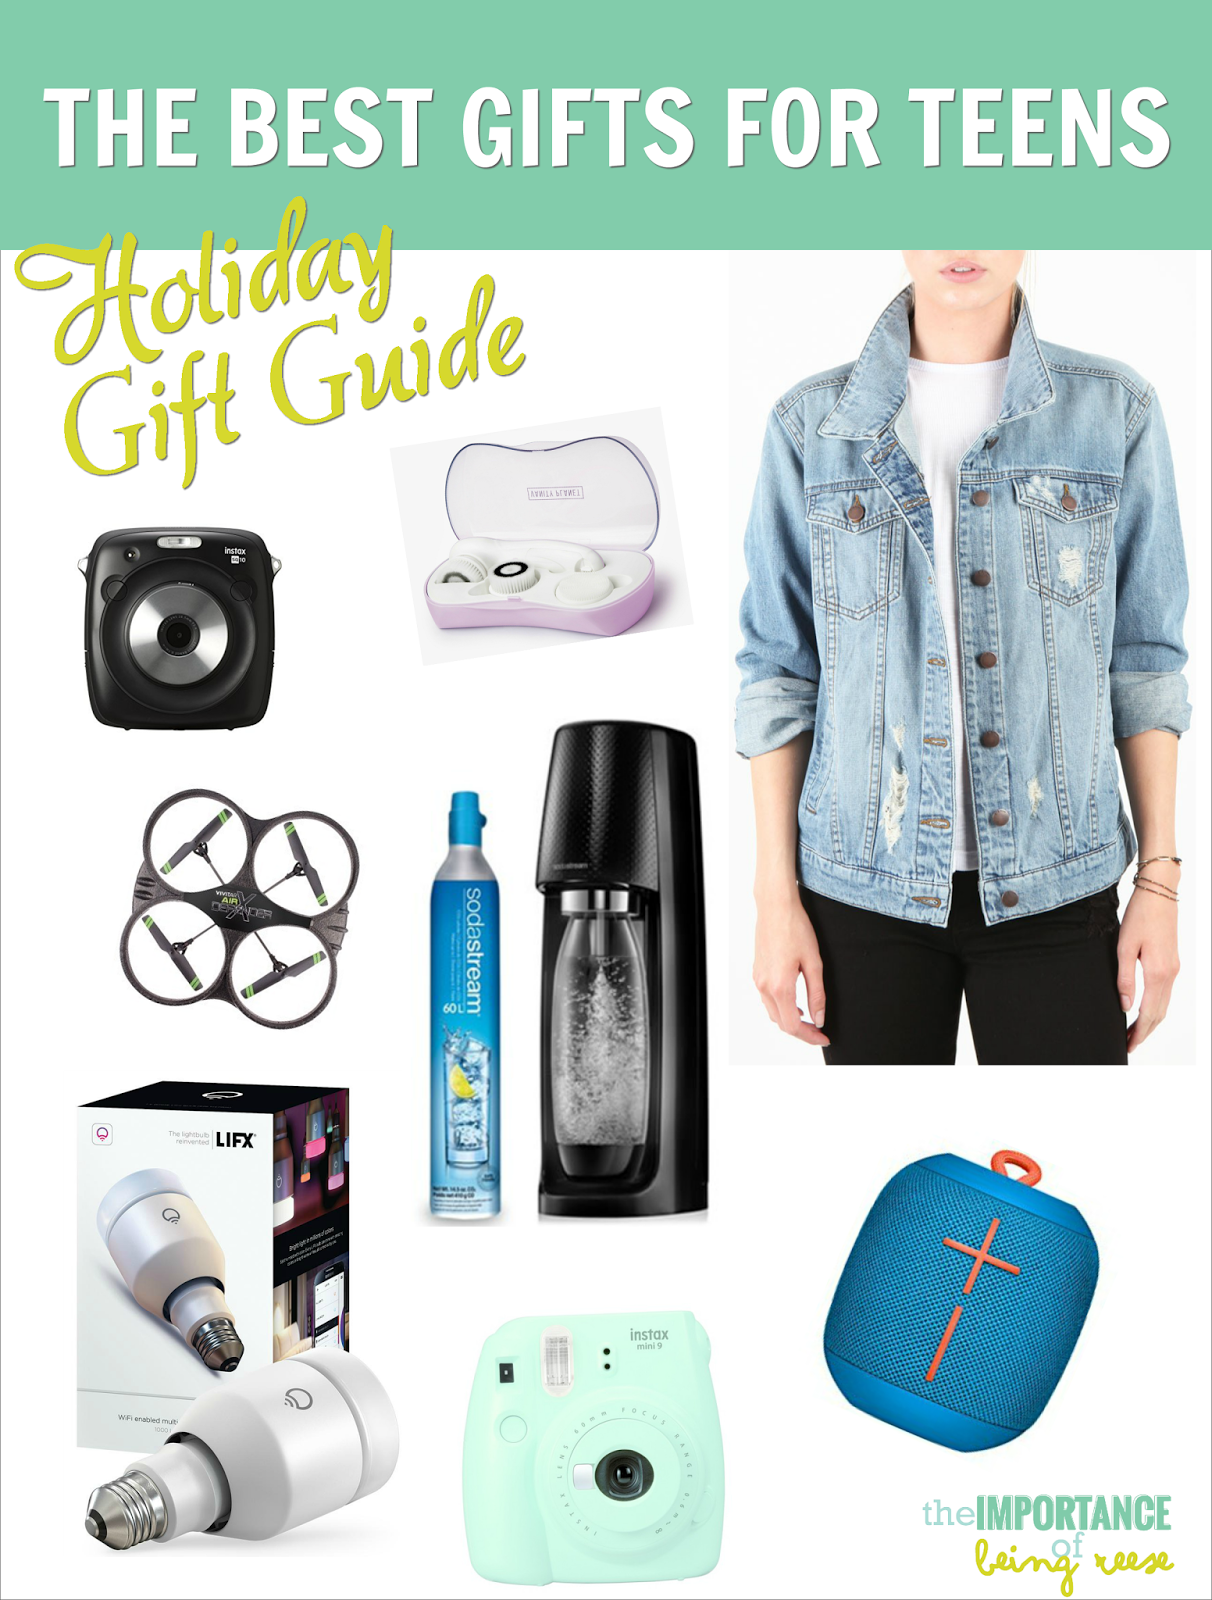 Check out some of the hottest gifts for teens this Holiday season!